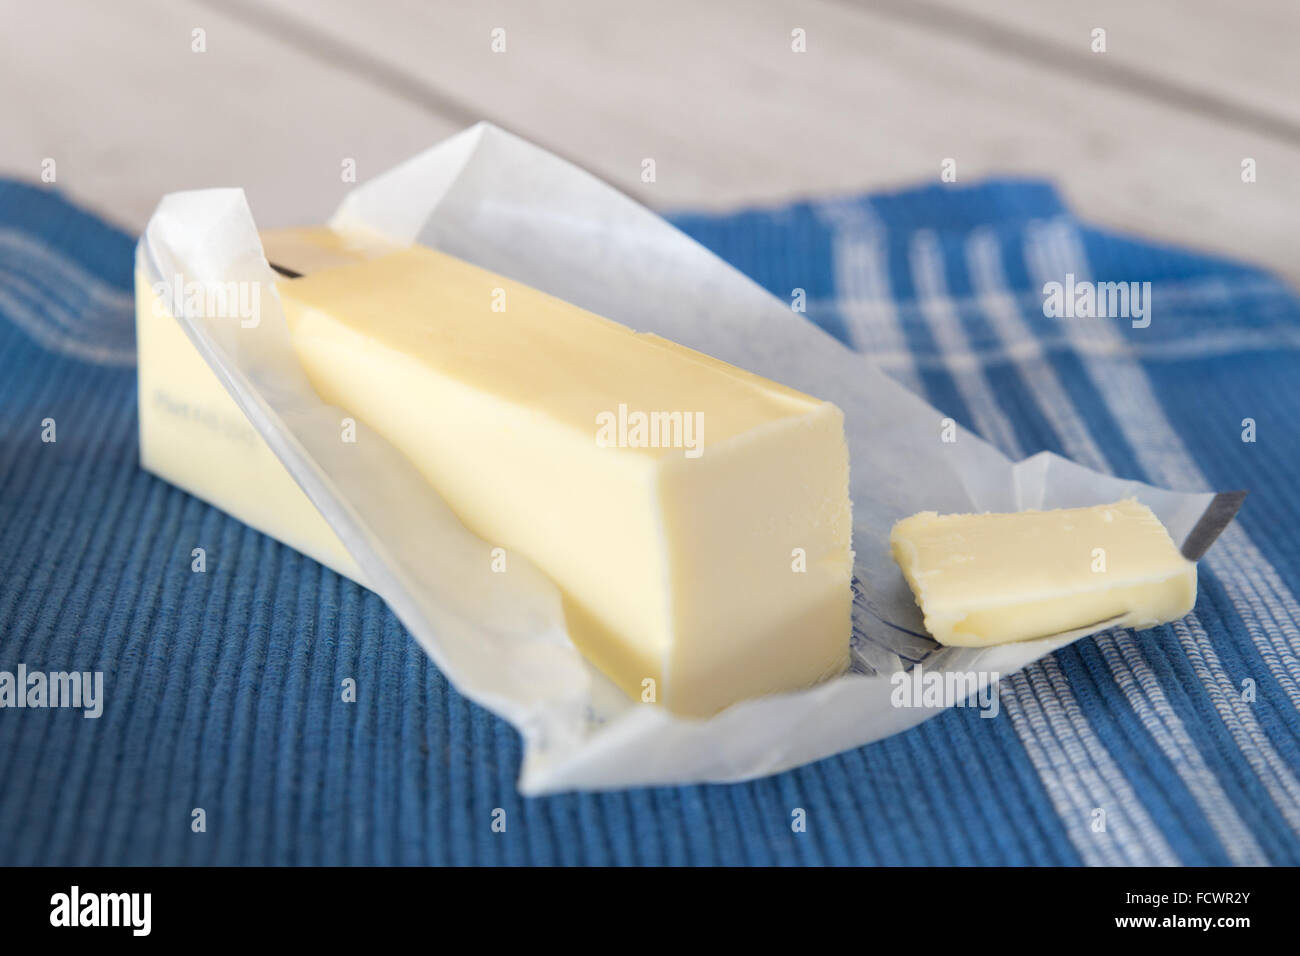 stick of fresh creamery butter in opened wrapper - Stock Image